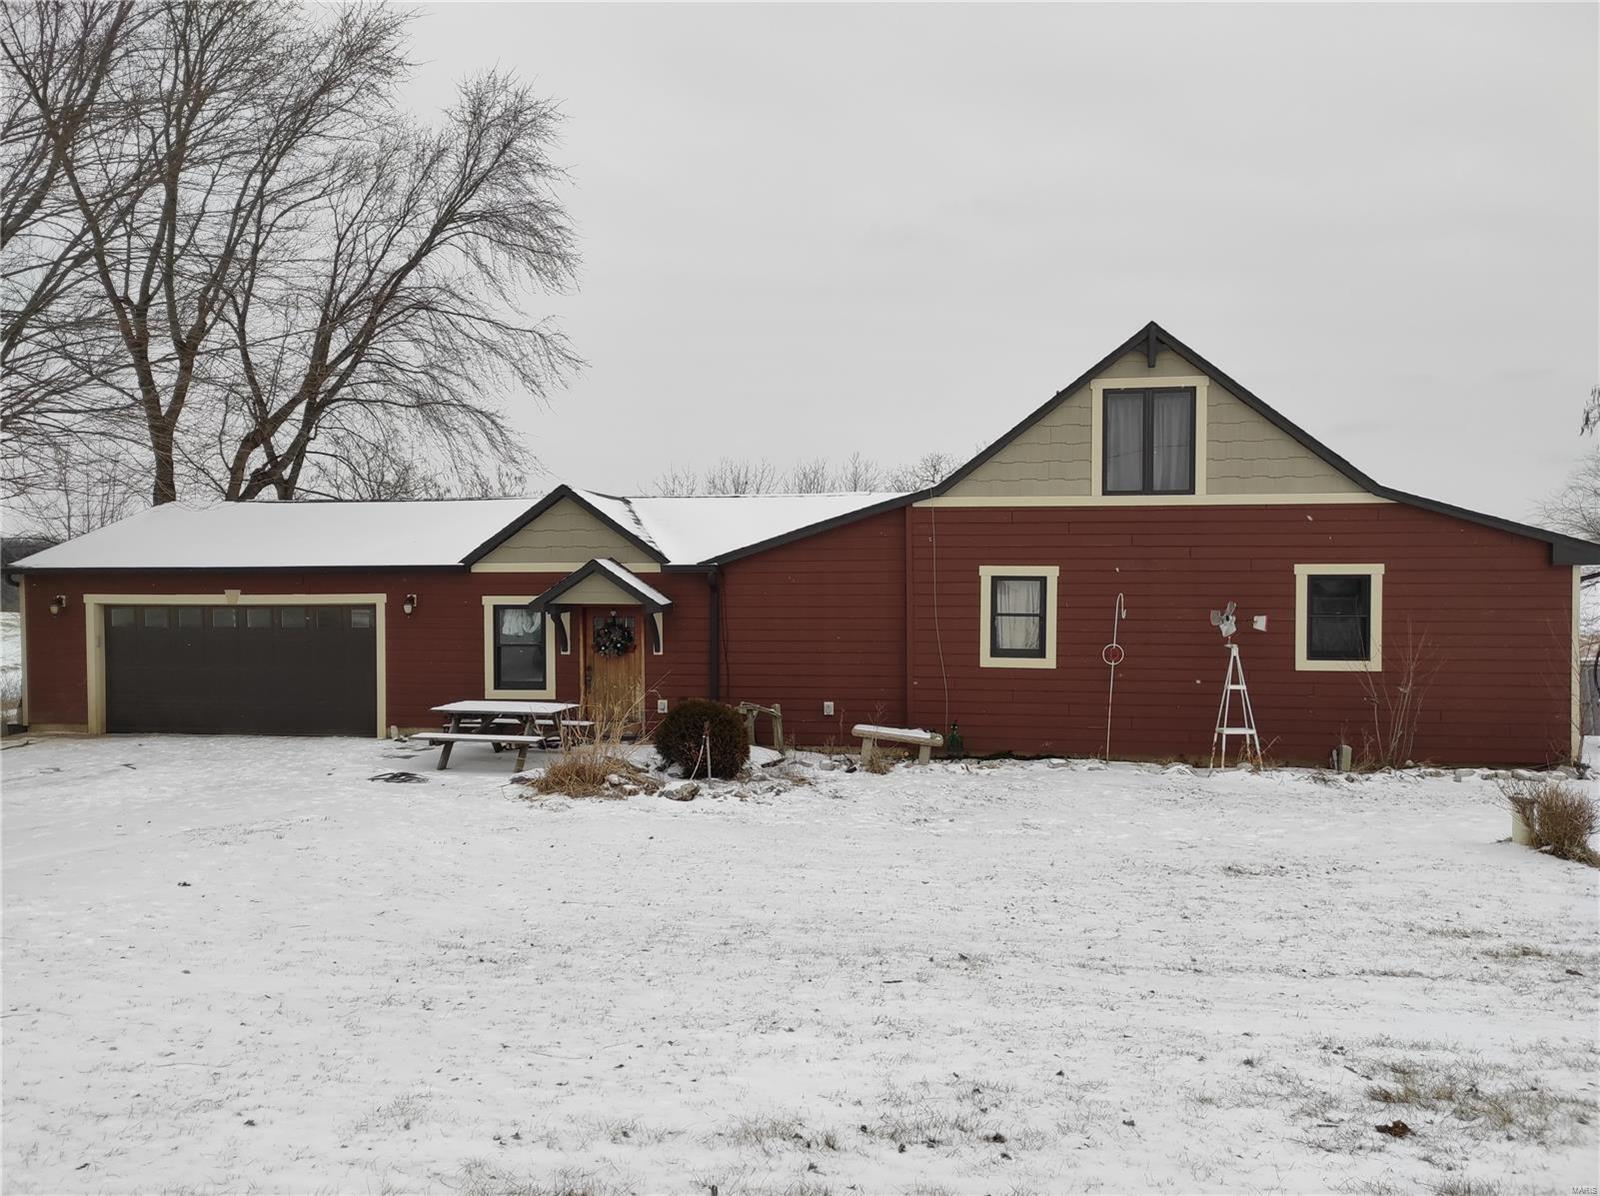 15867 West Coppermine Property Photo - Ste Genevieve, MO real estate listing